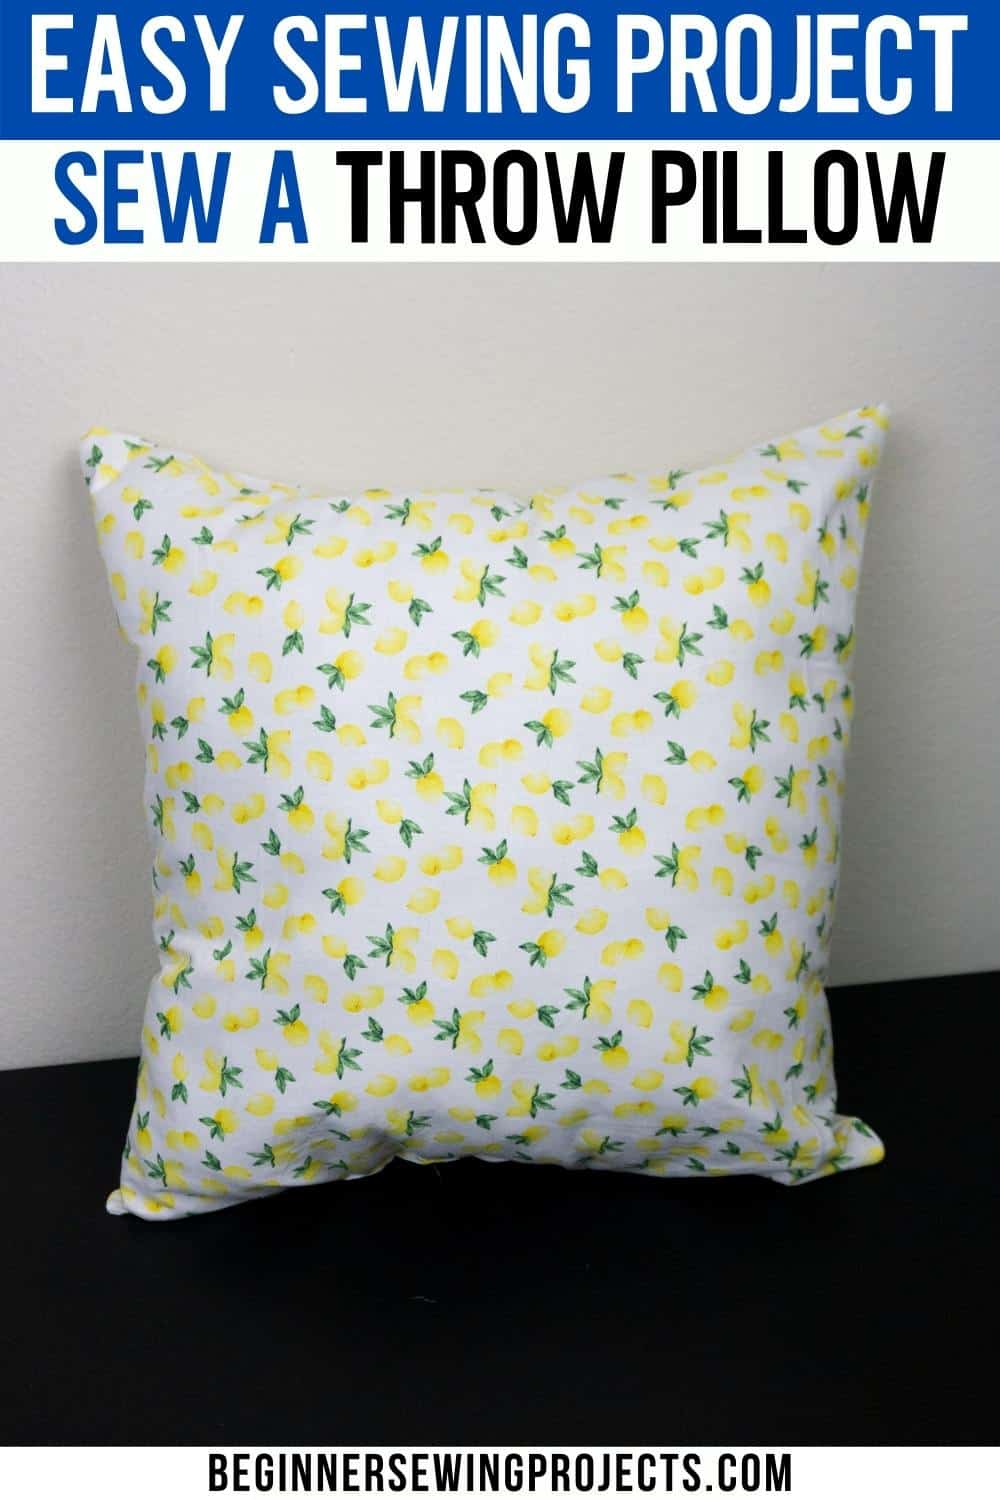 Easy Sewing Project Sew a Throw Pillow